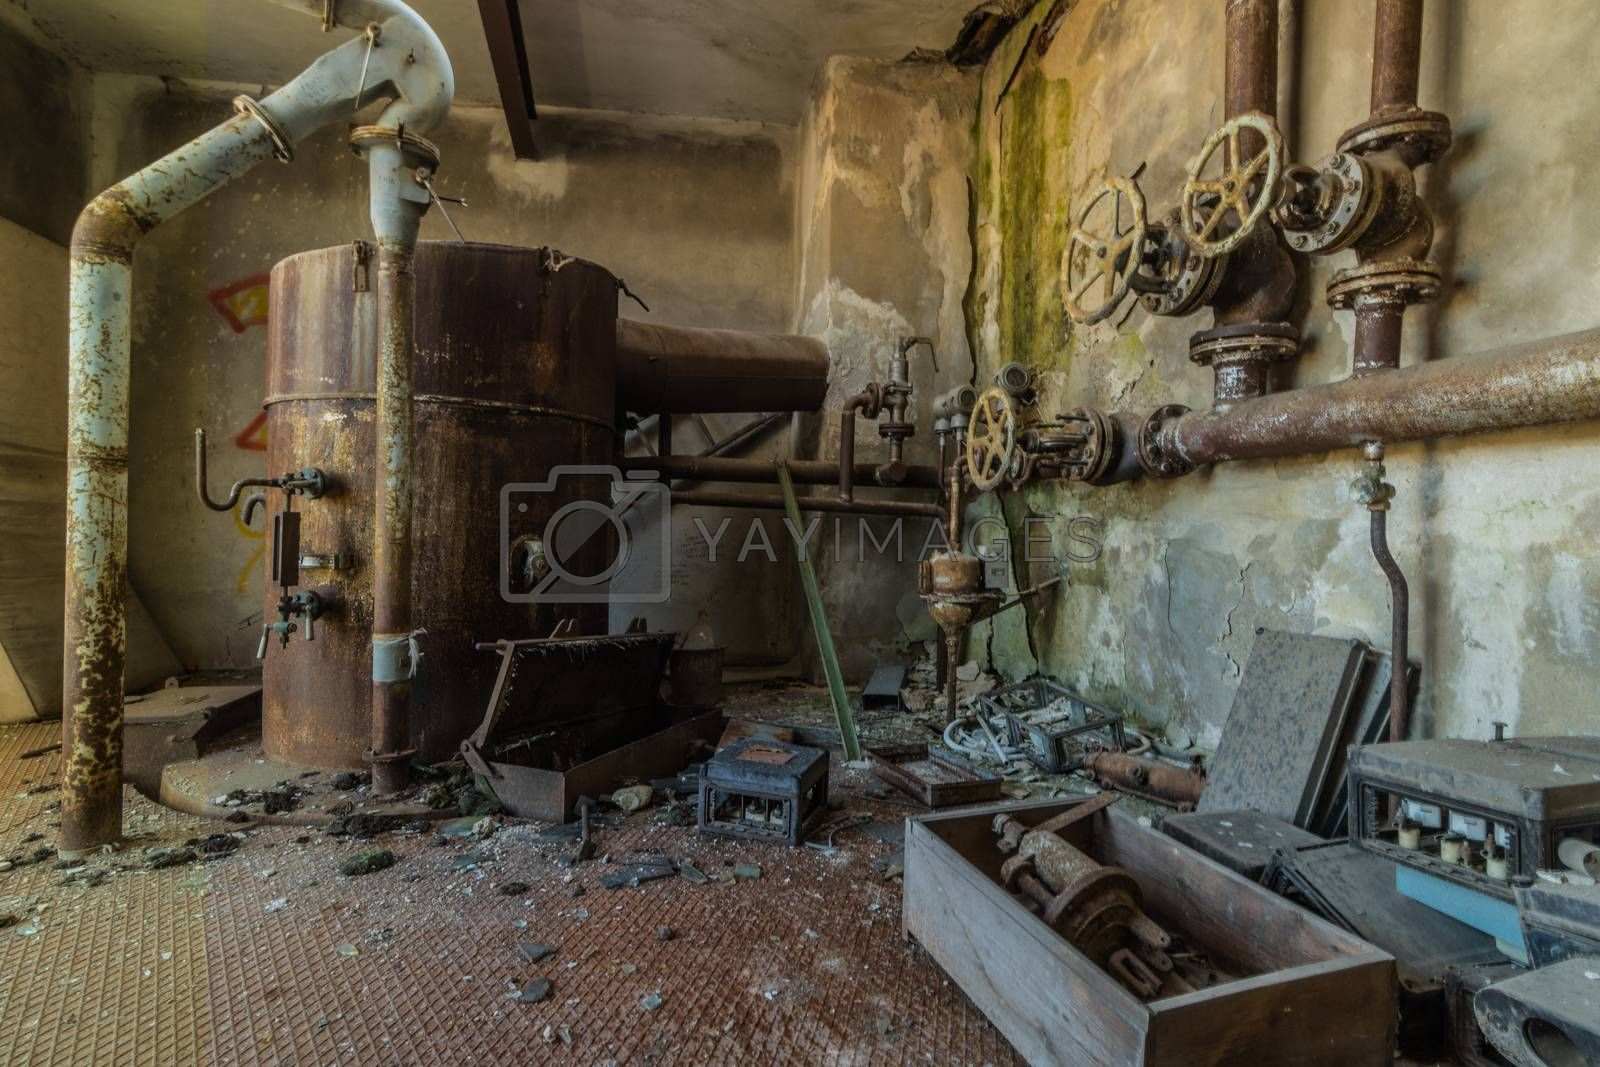 boiler house from an old abandoned factory